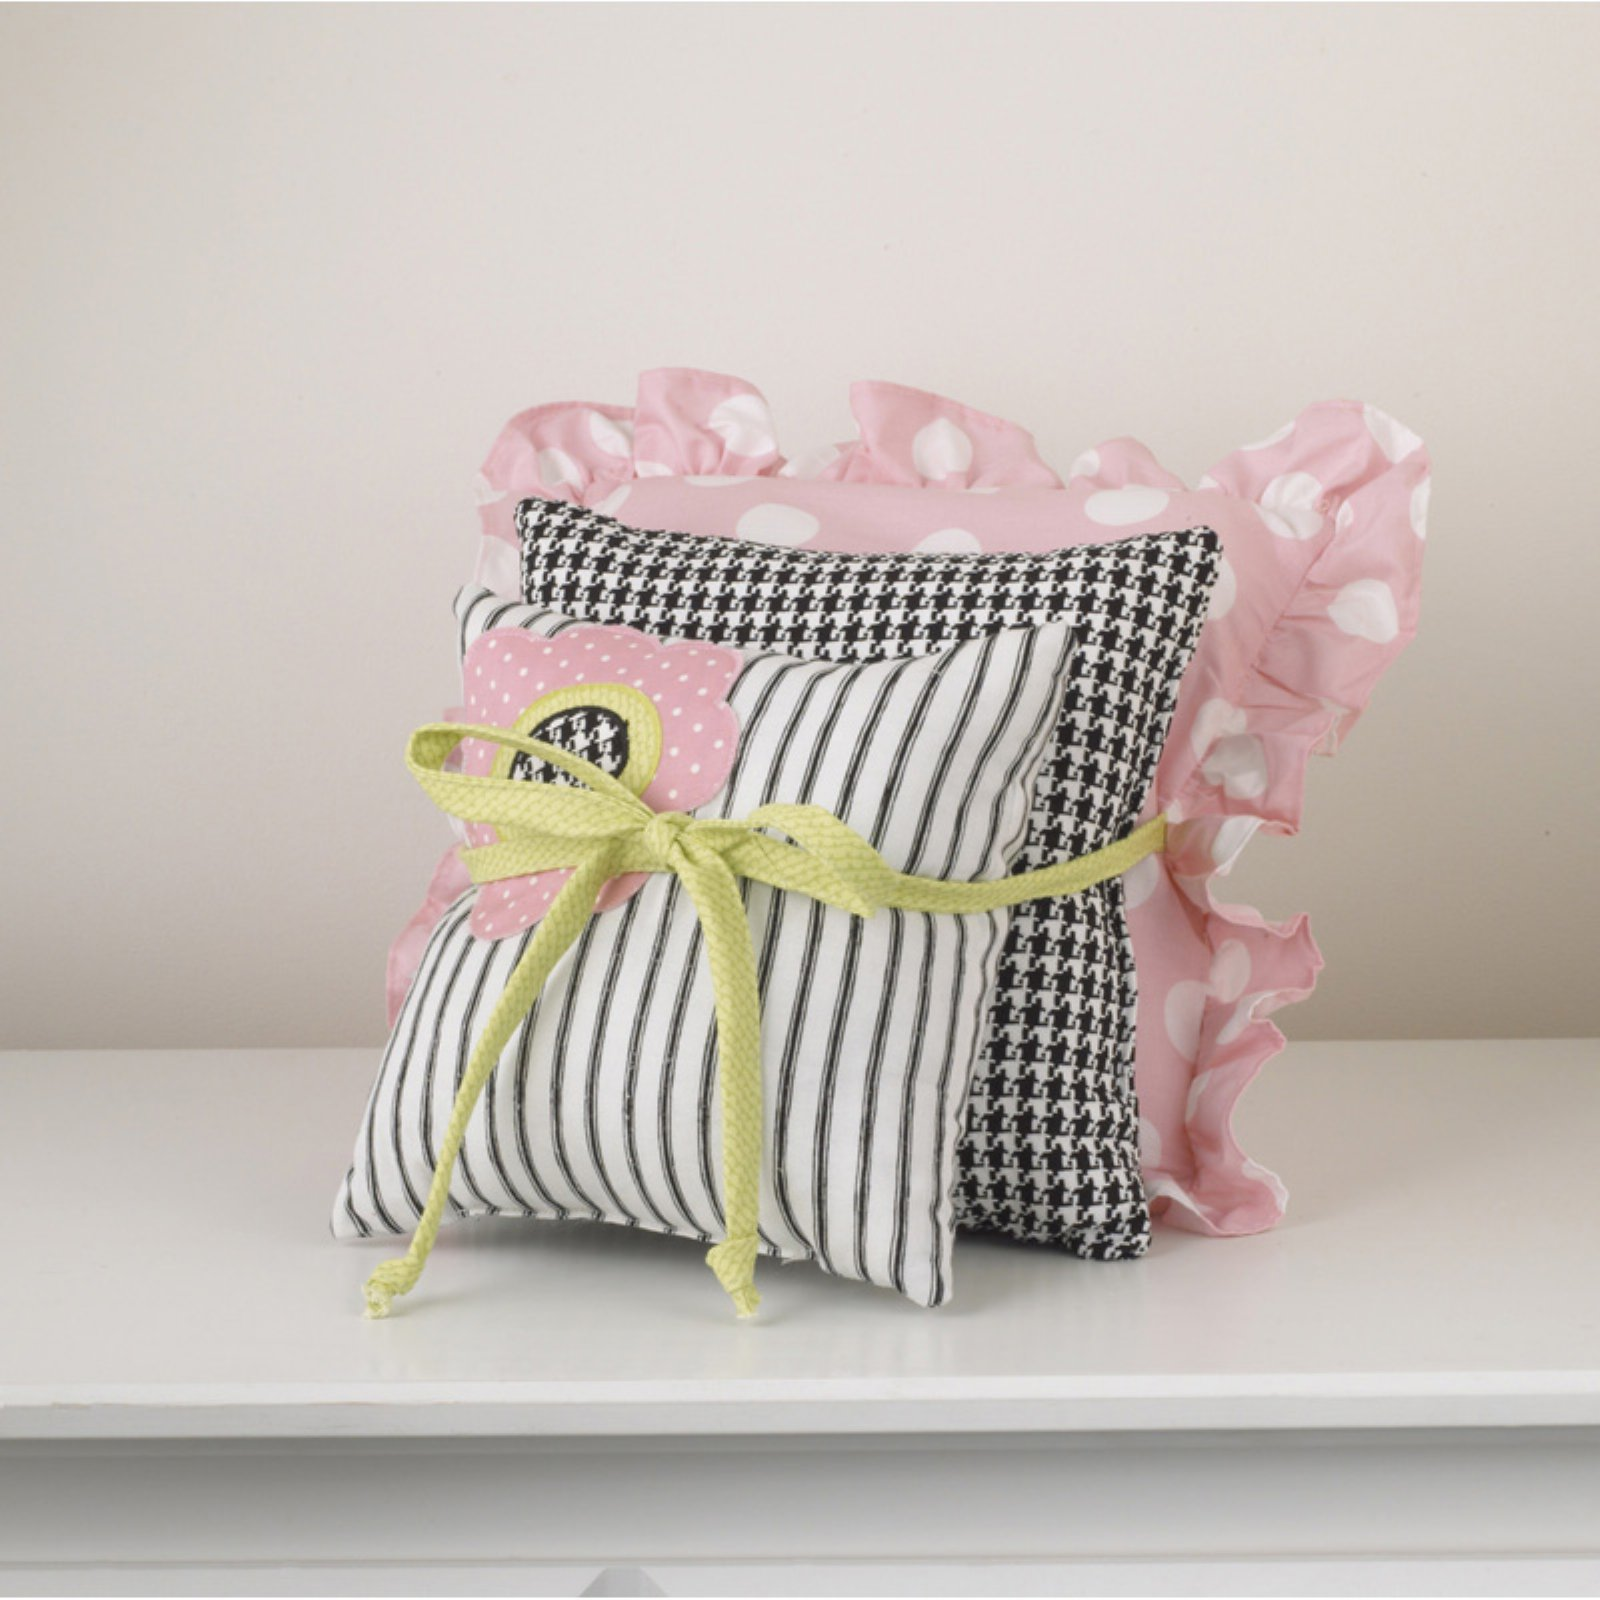 Cotton Tale Designs Poppy 3 Piece Decorative Pillow